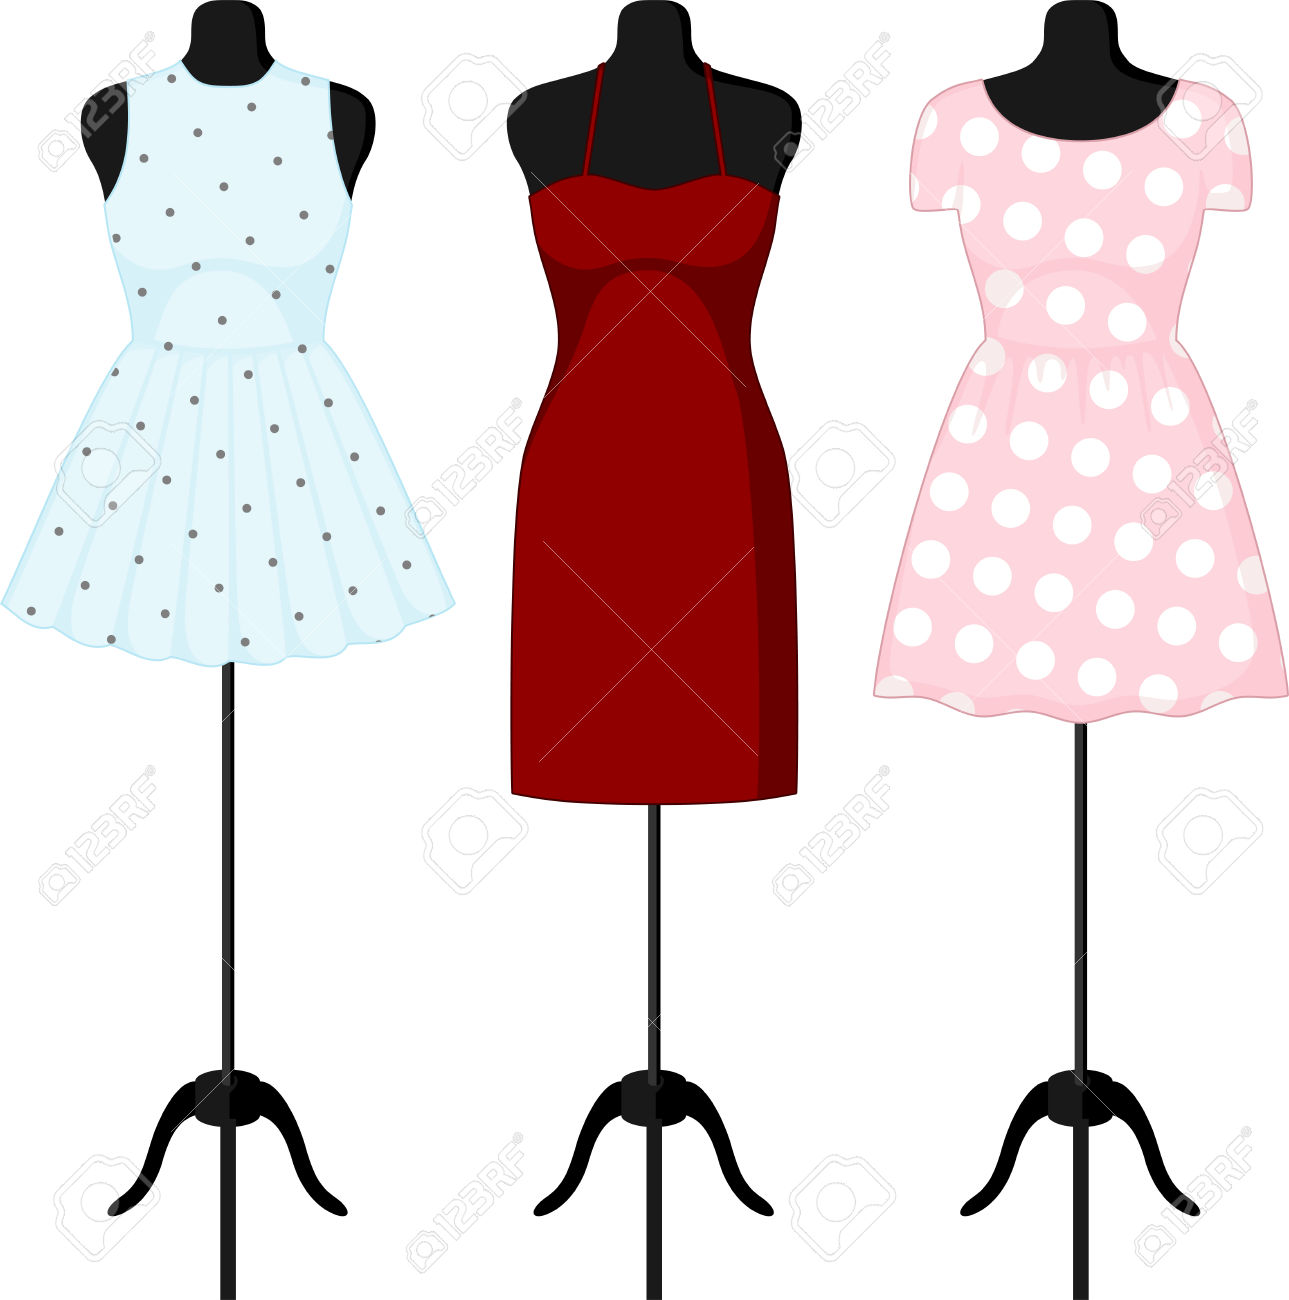 Gown clipart manikin 20clipart Tiny Mannequin 20clipart 108